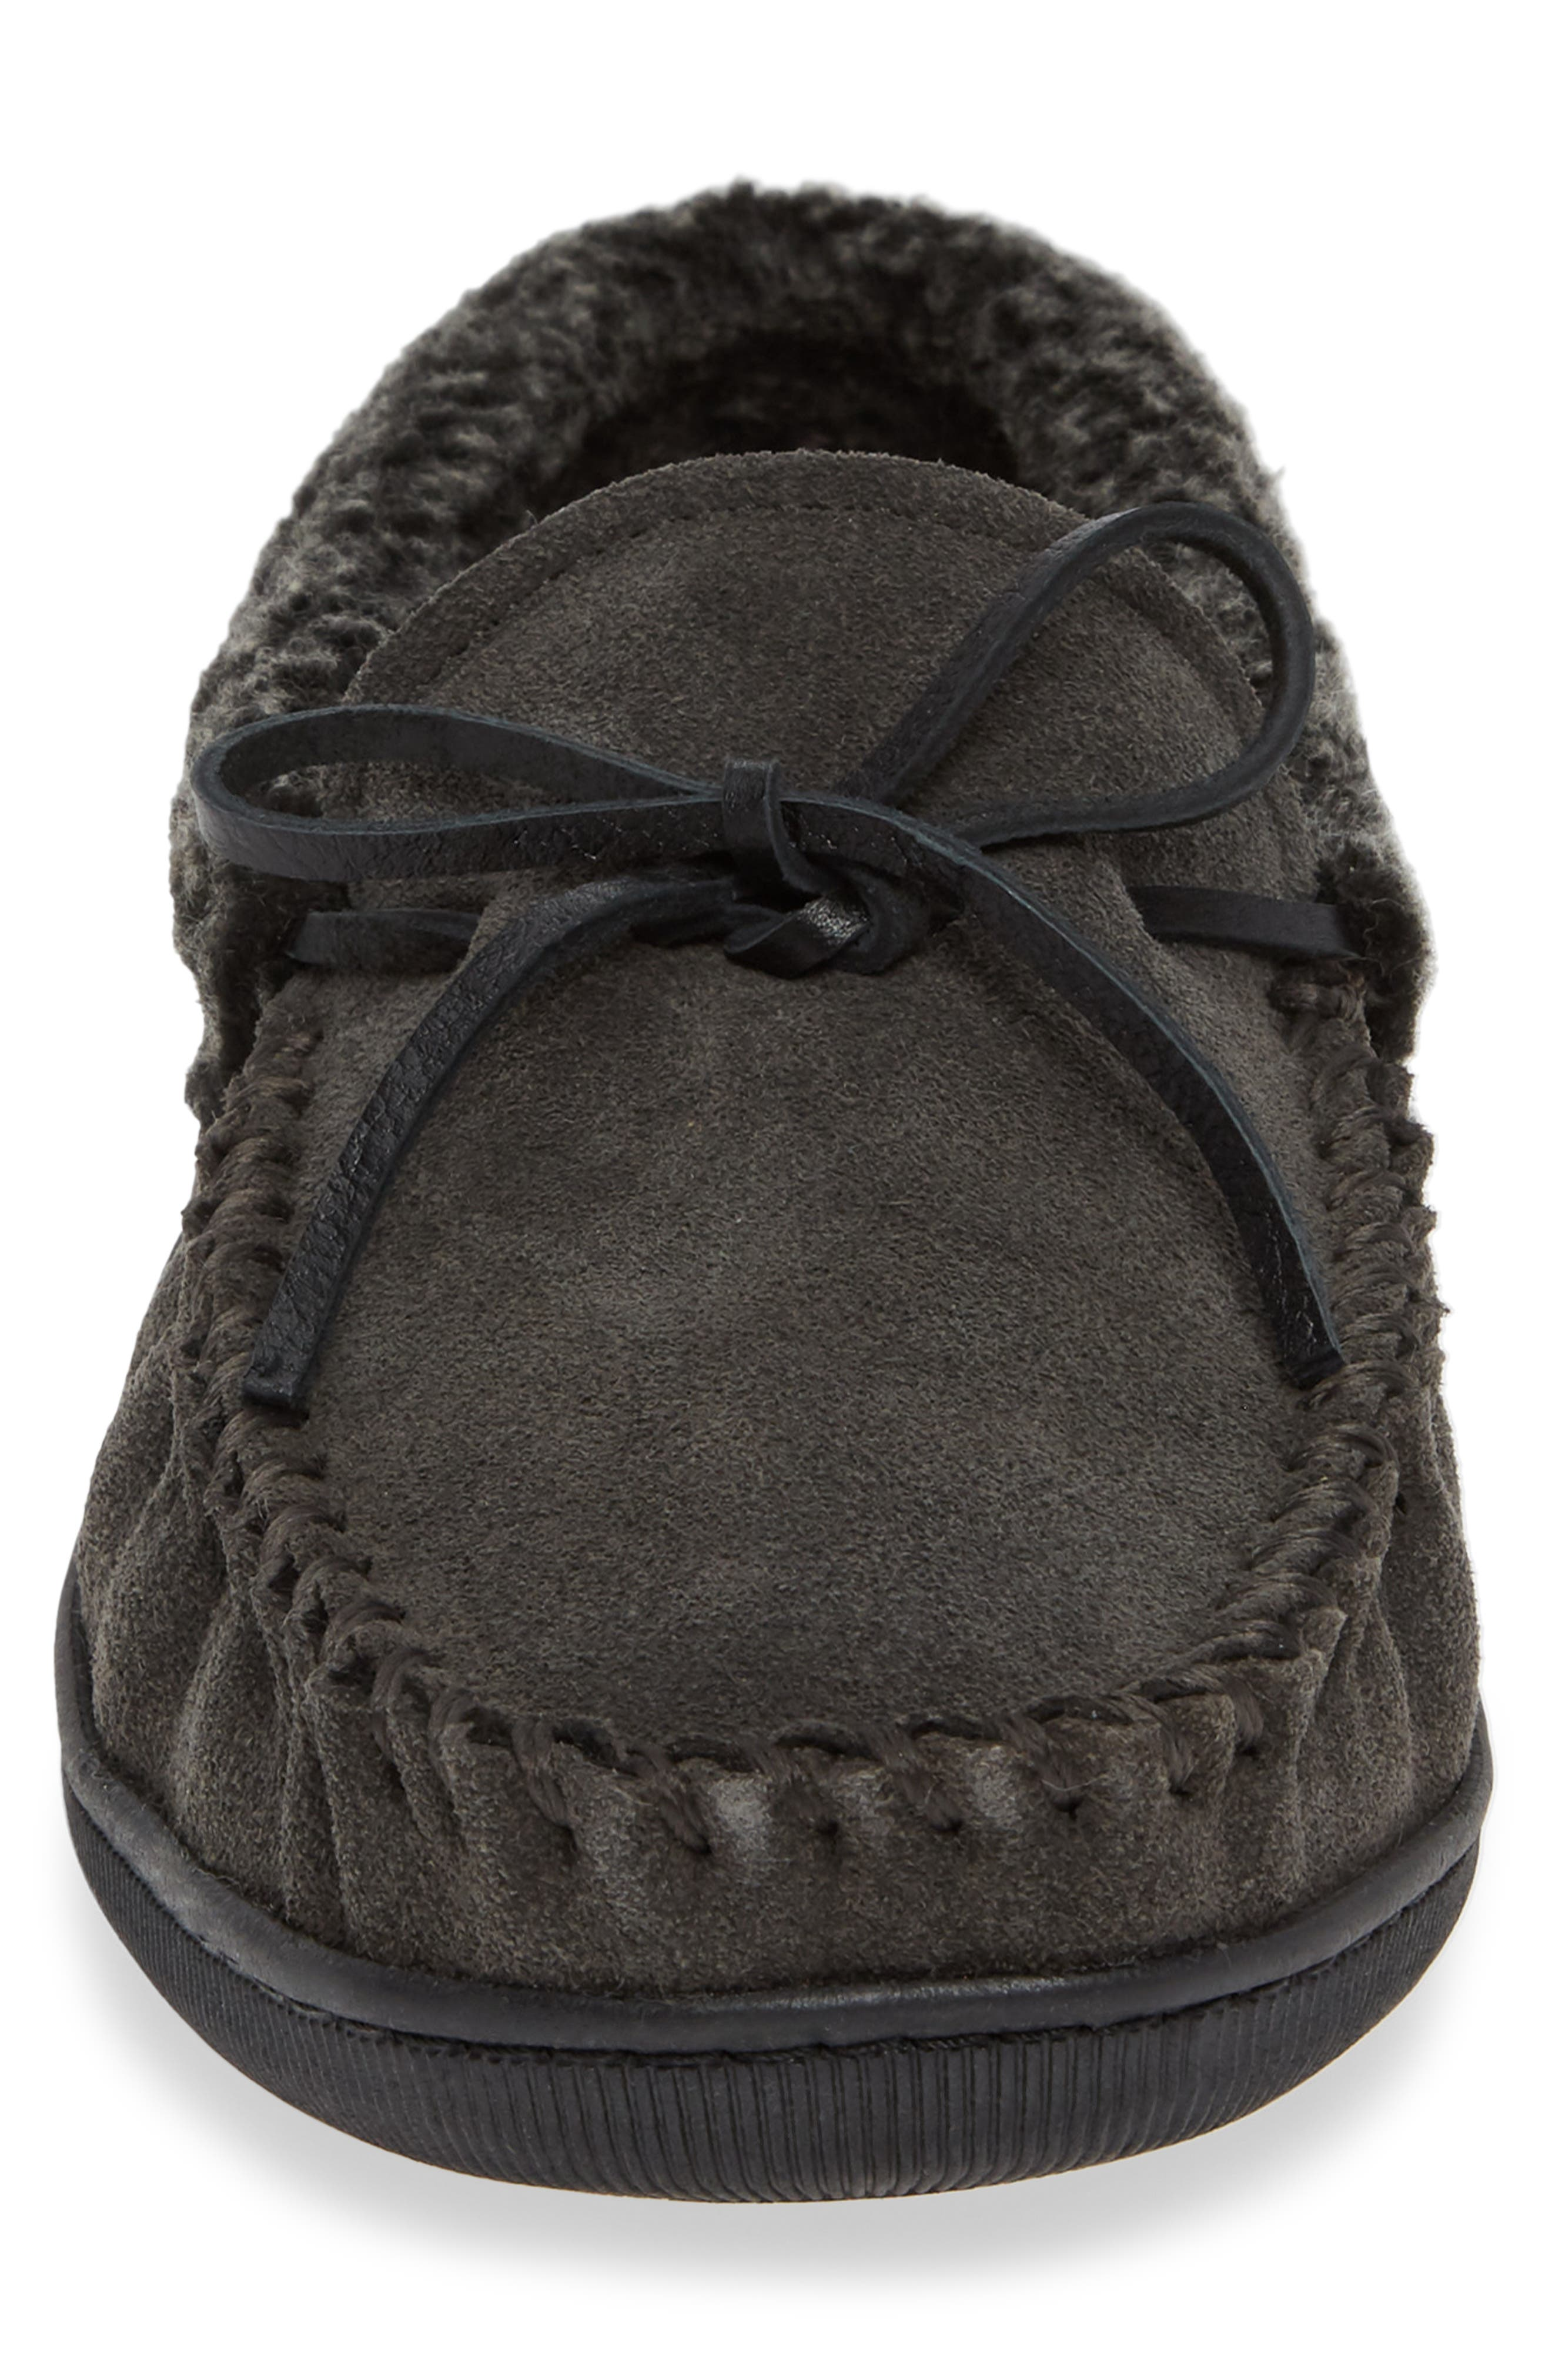 Allen Moccasin Slipper,                             Alternate thumbnail 4, color,                             CHARCOAL SUEDE